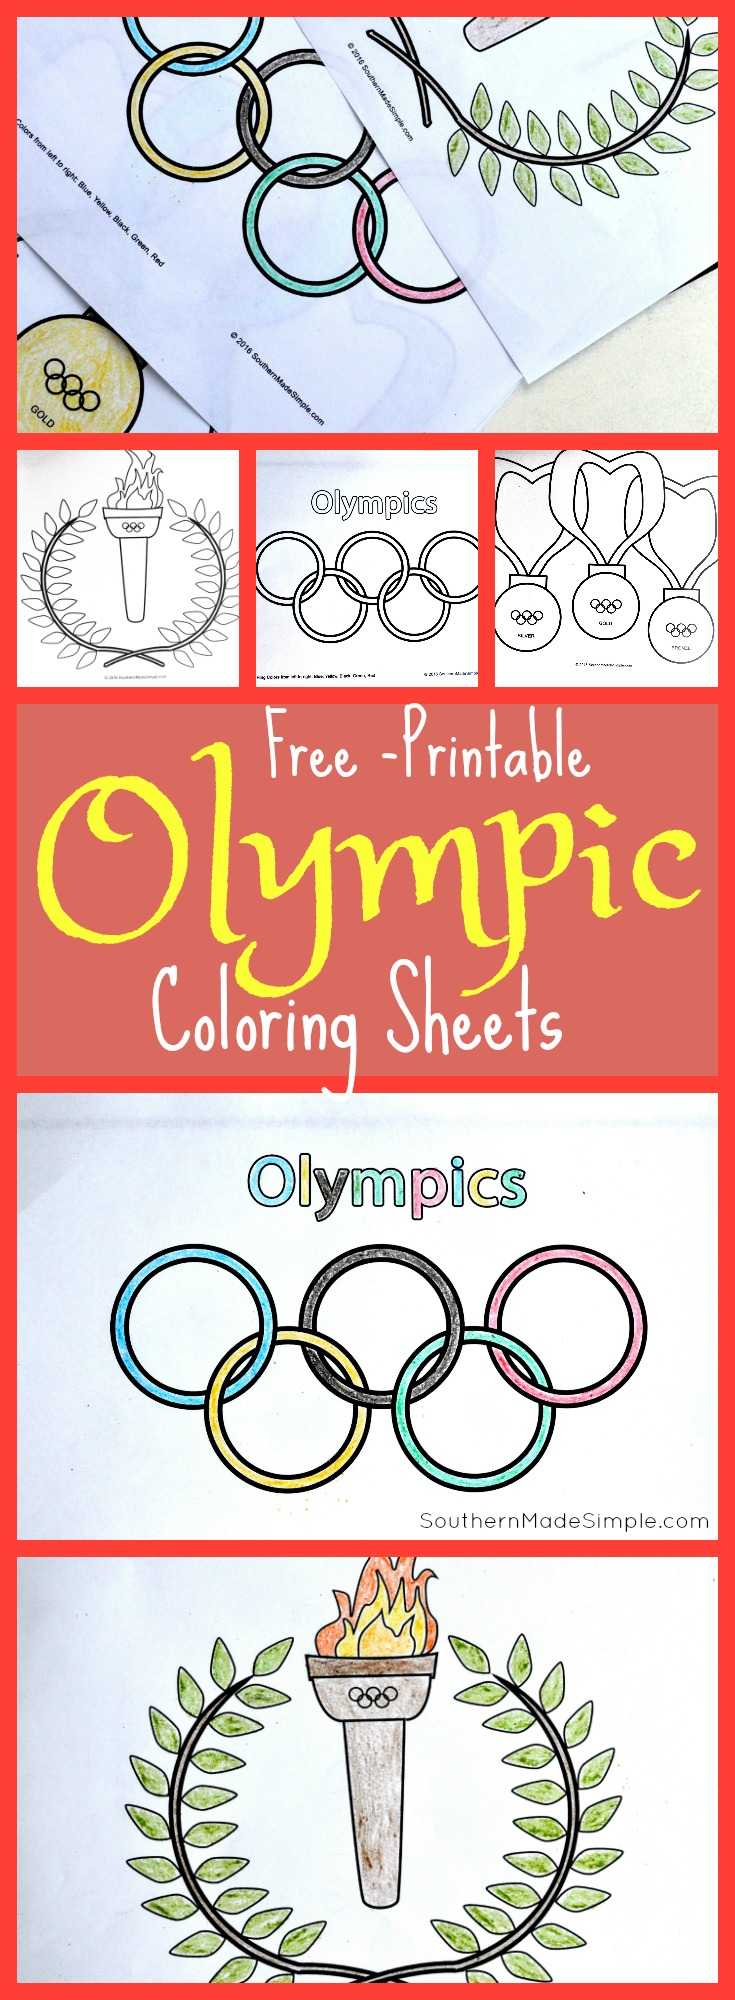 3 Free Printable Olympic Coloring Sheets + 4 Ways to Celebrate the Olympics with Kids